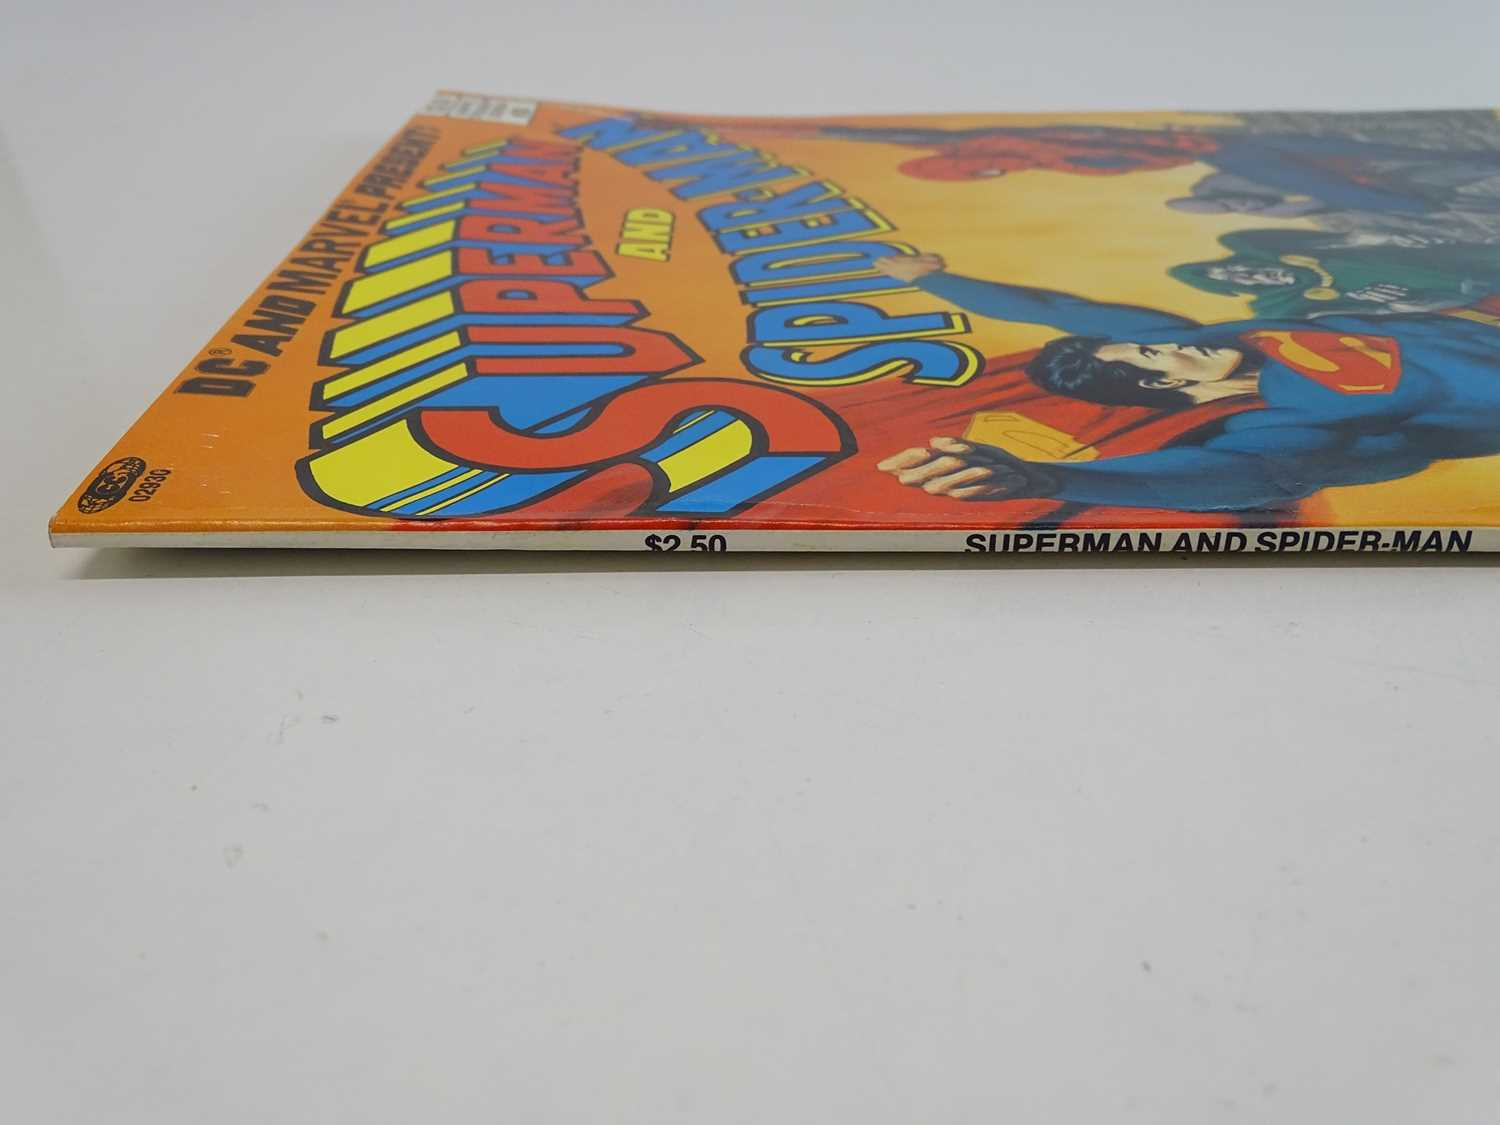 SUPERMAN AND SPIDER-MAN: COLLECTORS EDITION (1981 - MARVEL/DC) Special edition over-sized issue - Image 8 of 9